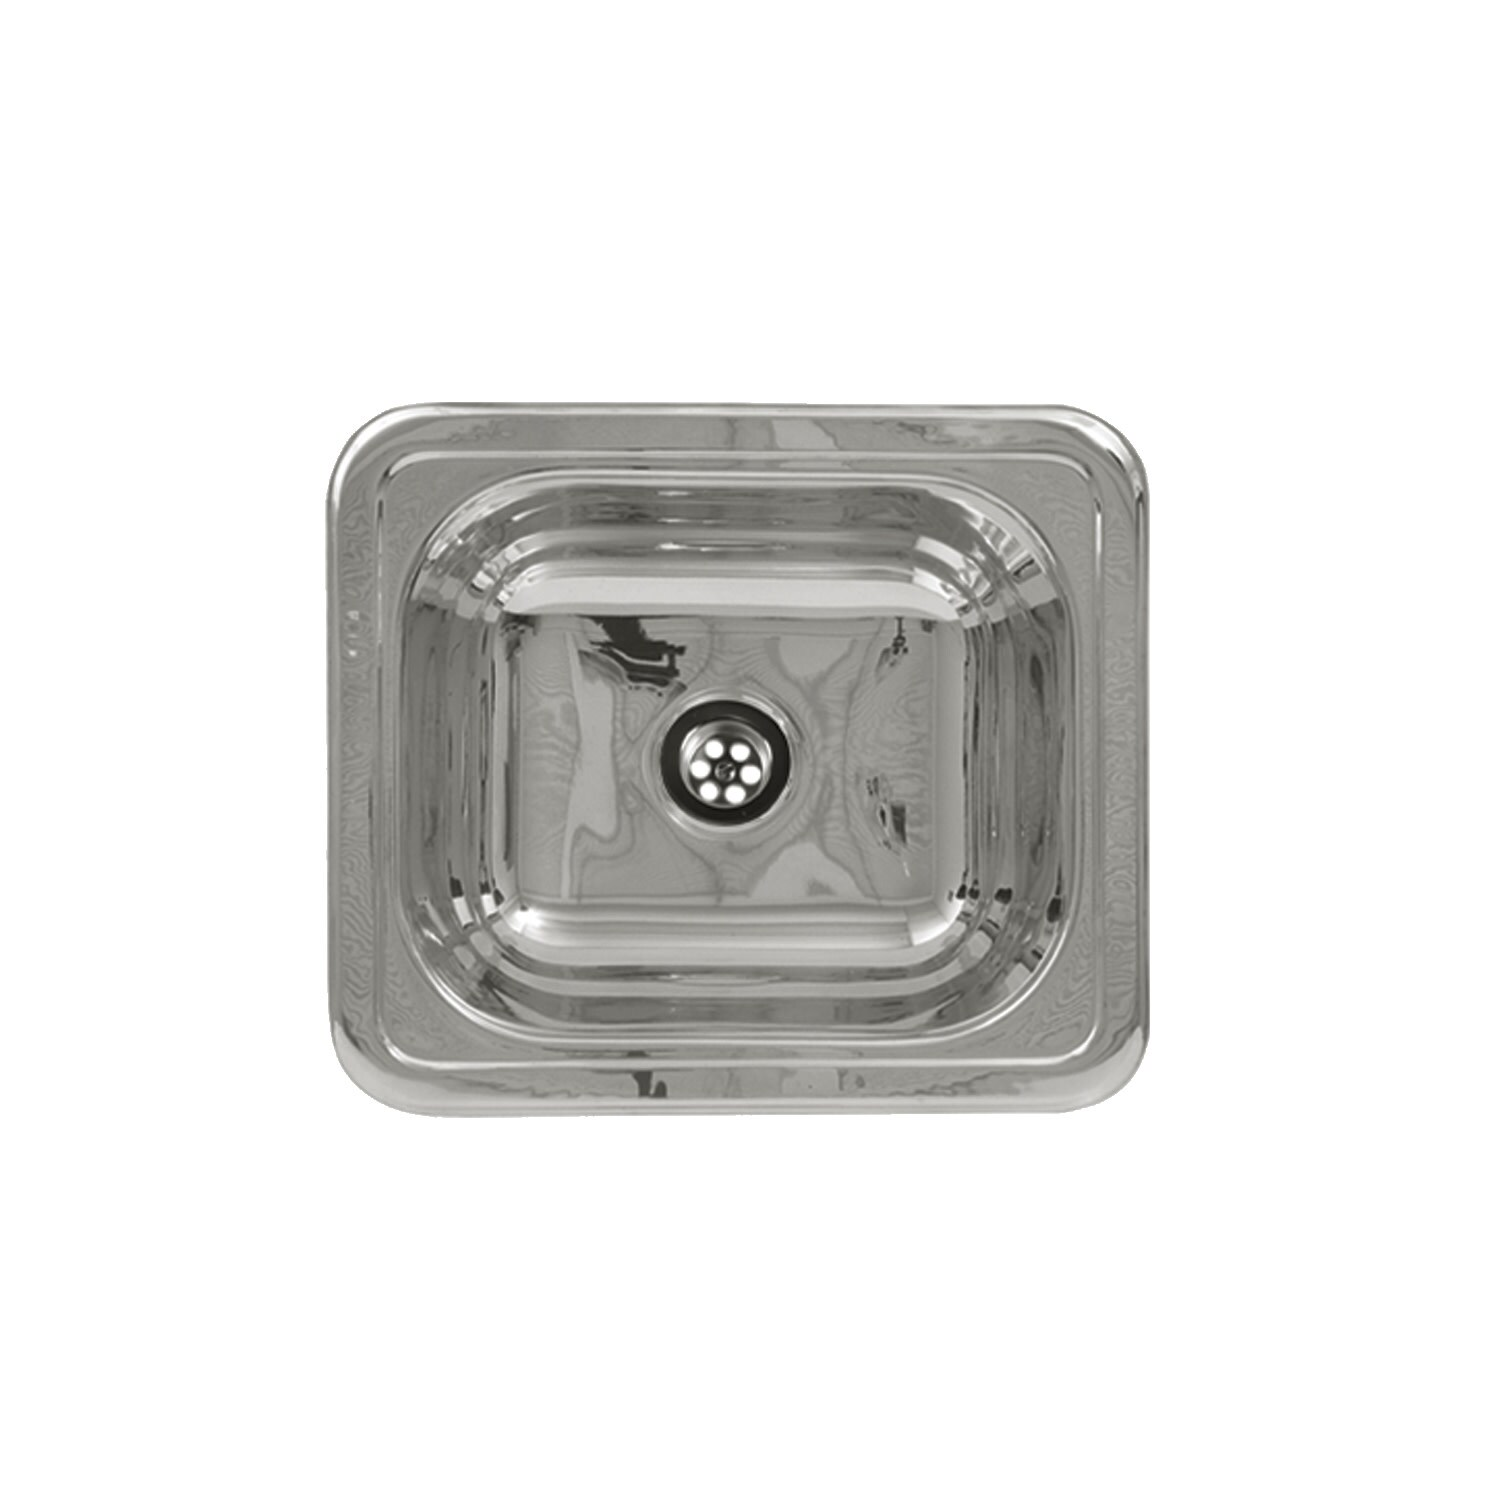 Shop Whitehaus Wh693abl Single Basin Stainless Steel Kitchen Sink From The Polished Stainless Steel Overstock 29856103